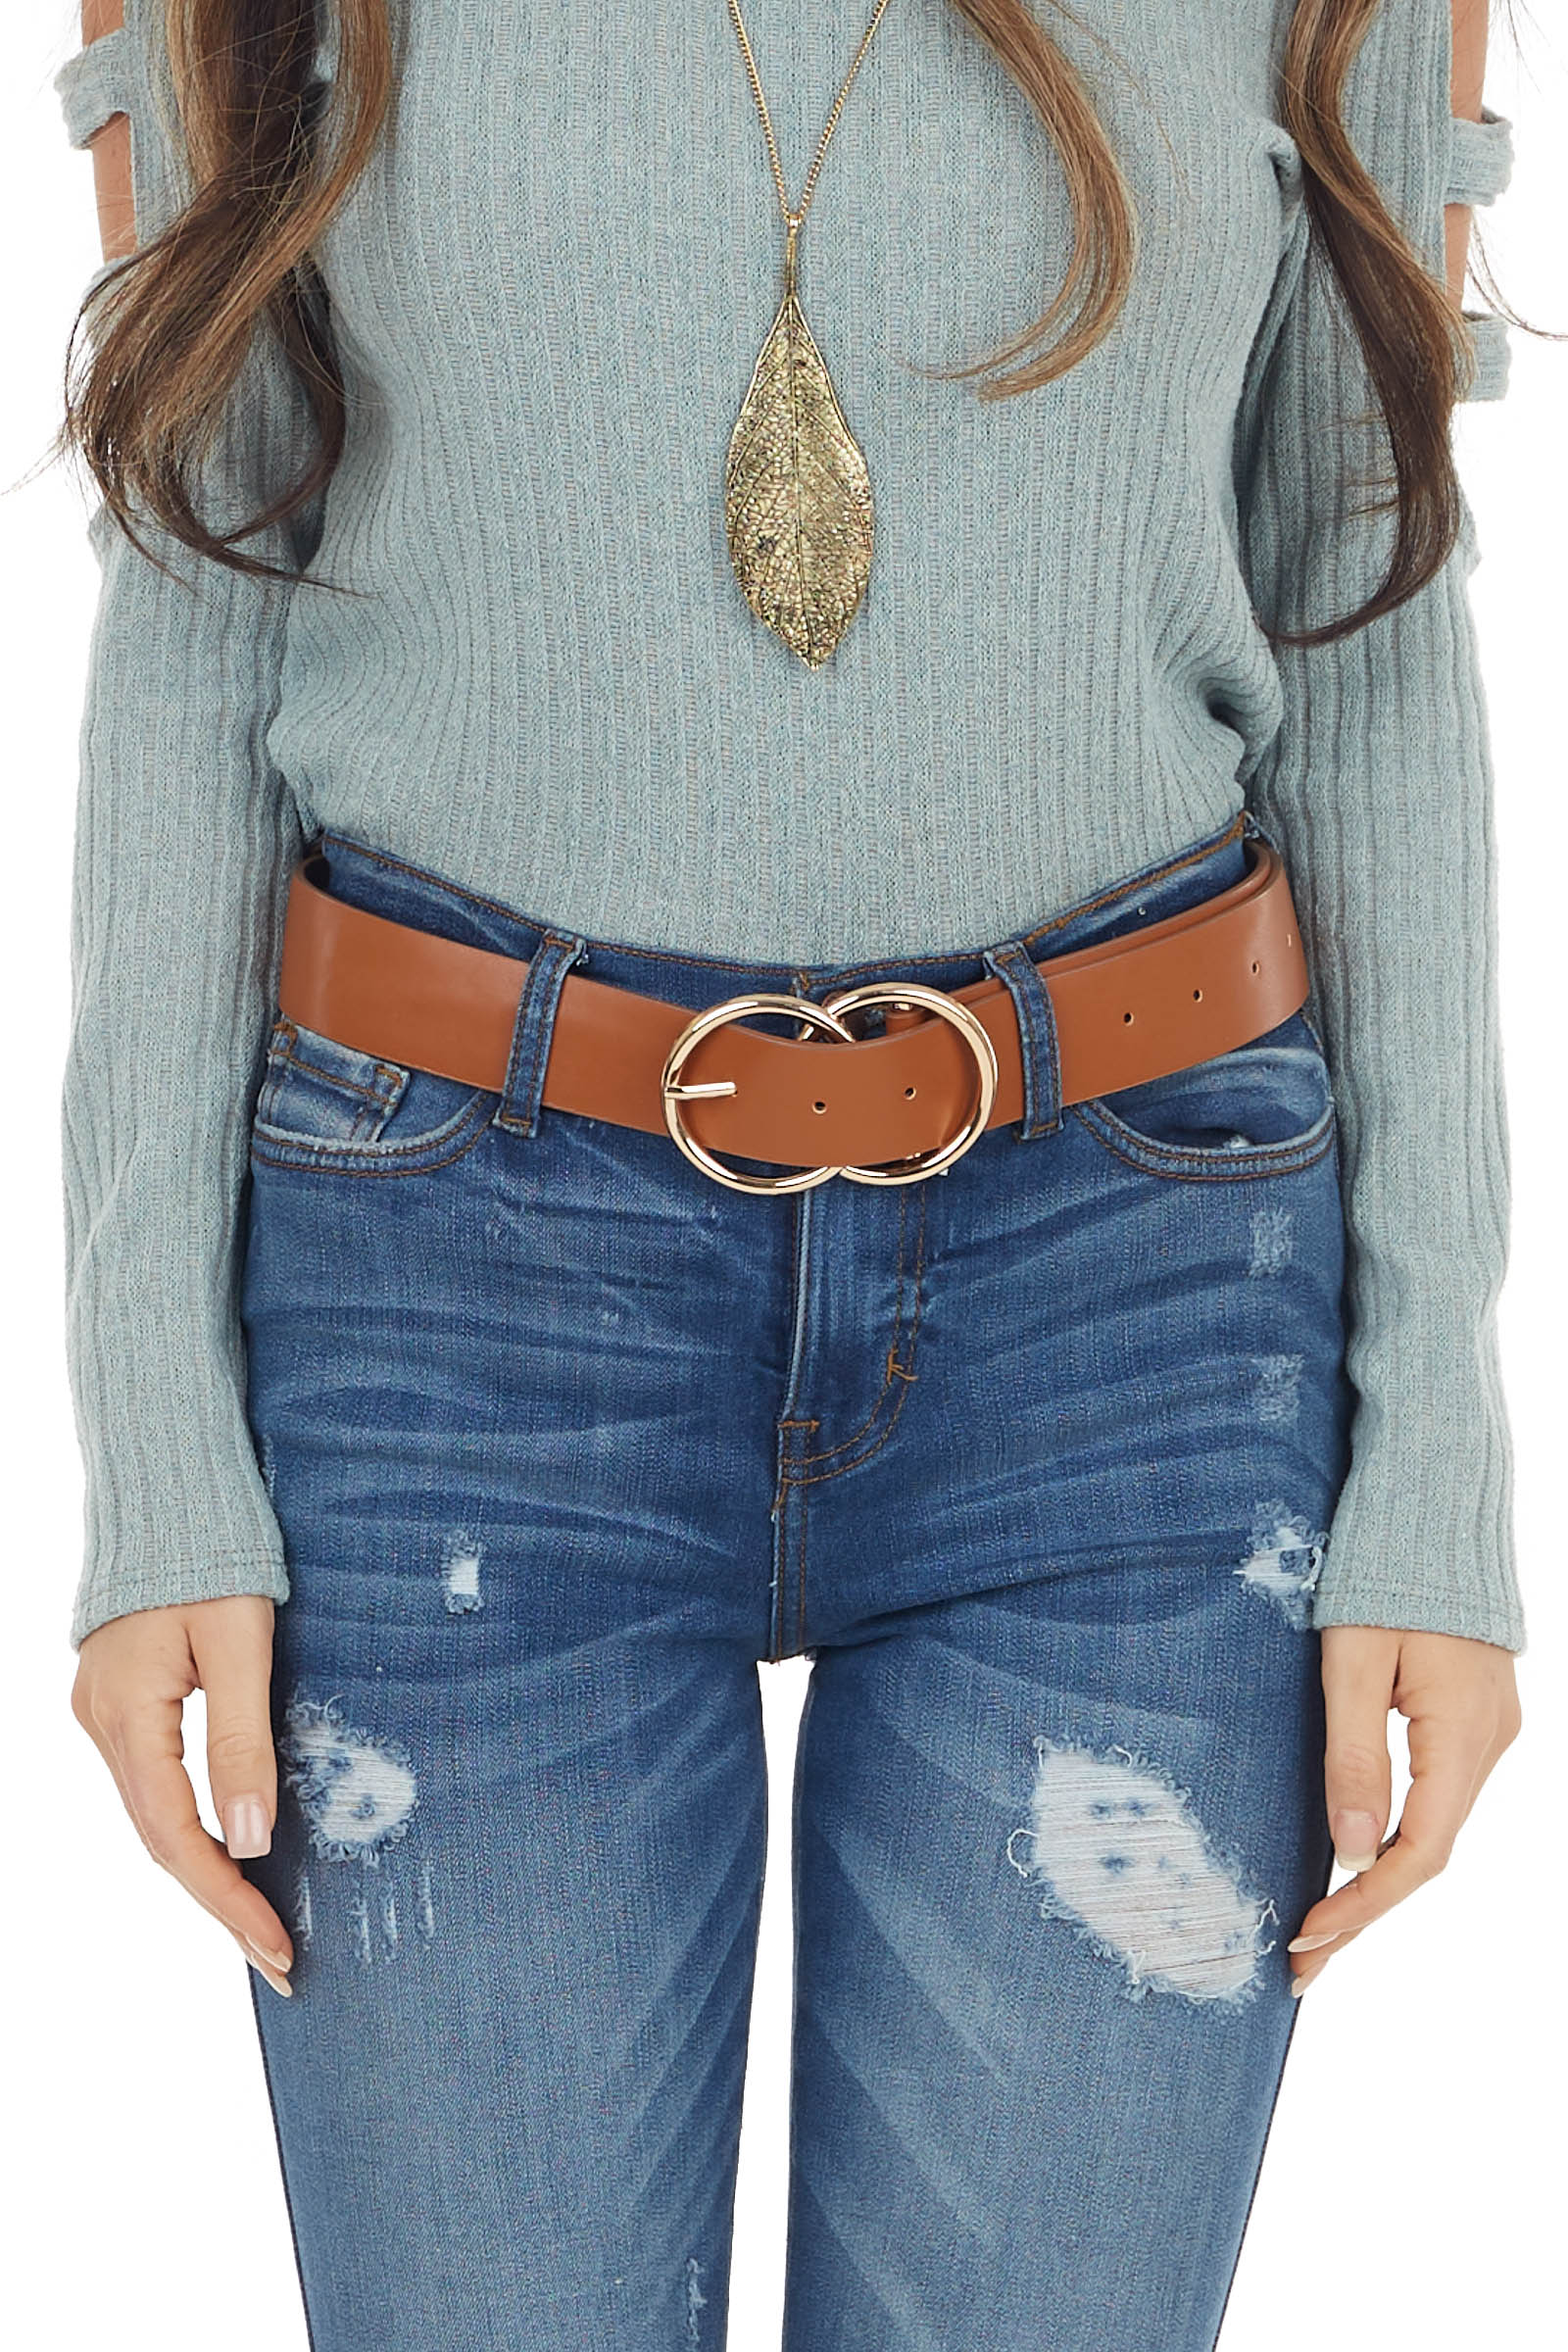 Caramel Faux Leather Belt with Gold Double Ring Buckle